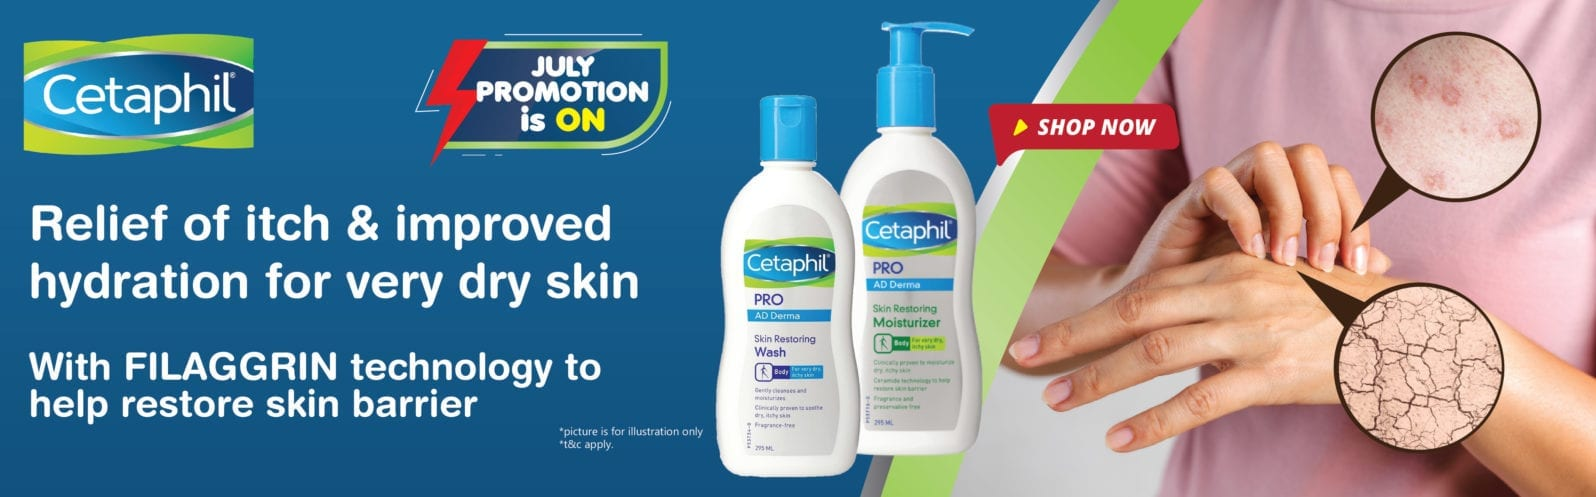 Alpro Pharmacy One Click Cetaphil range july promotion-01